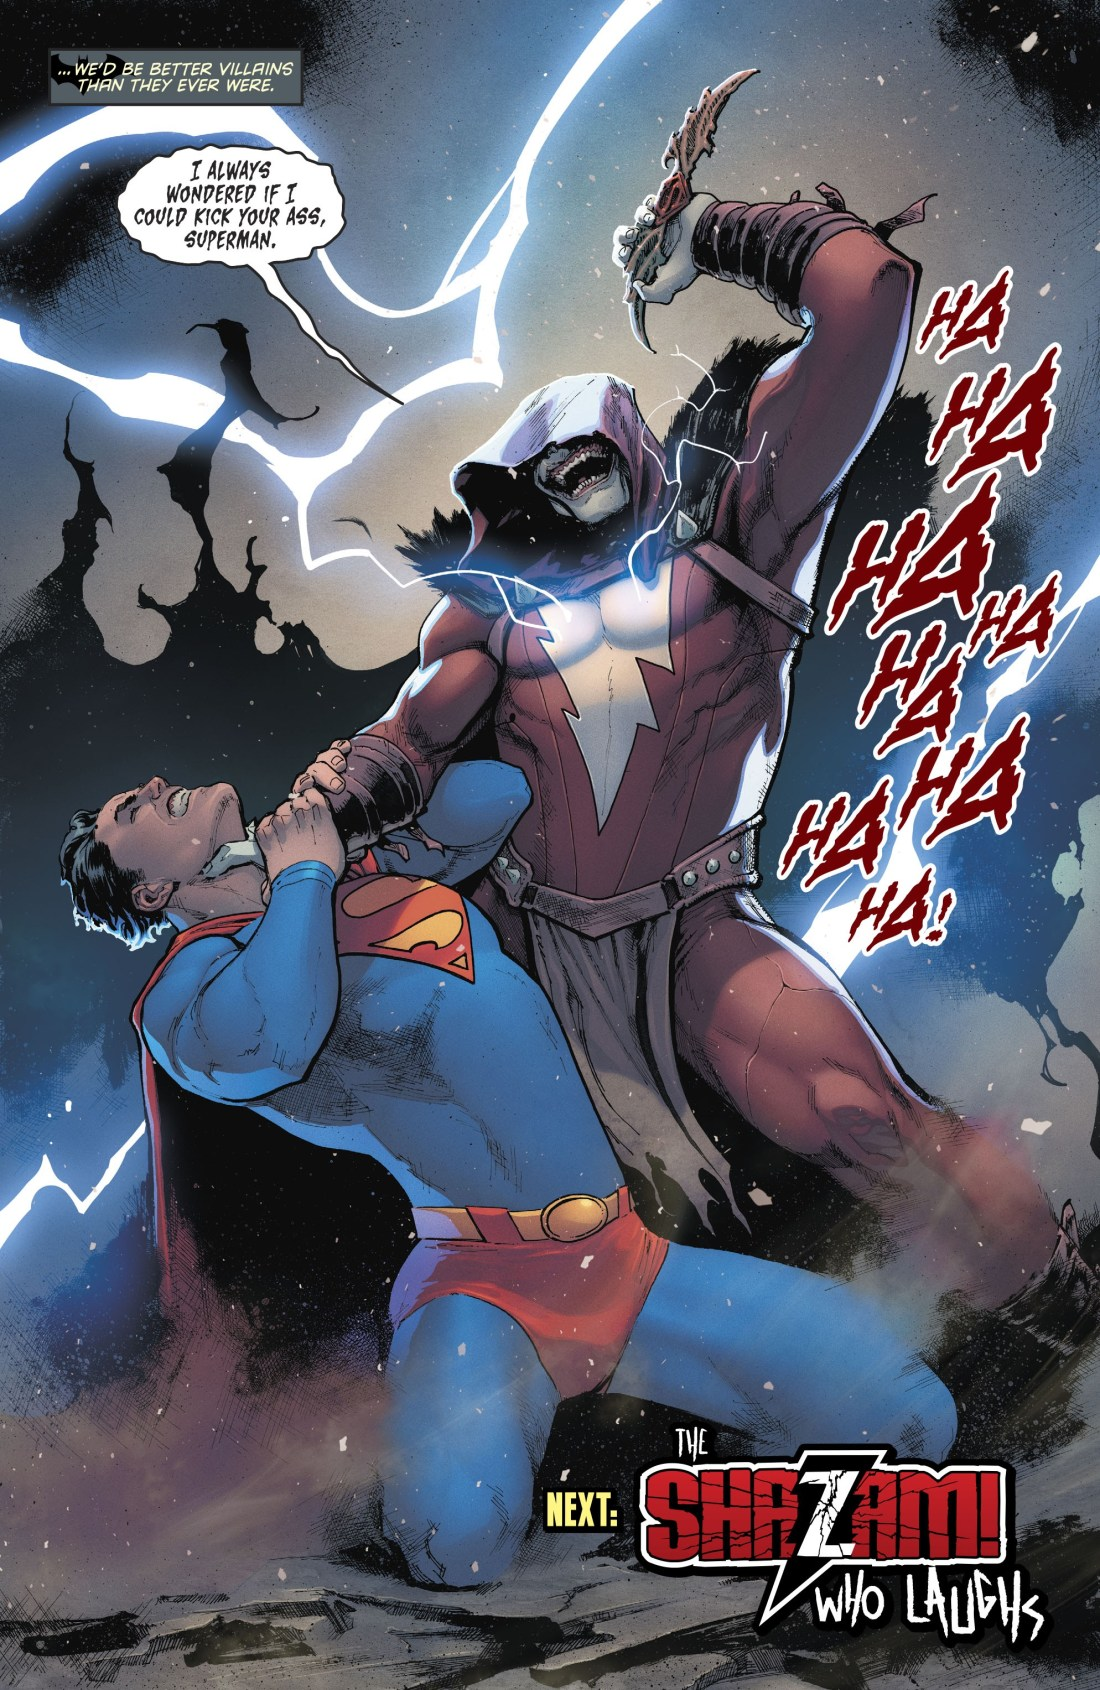 Superman being choked by the Shazam who laughs.